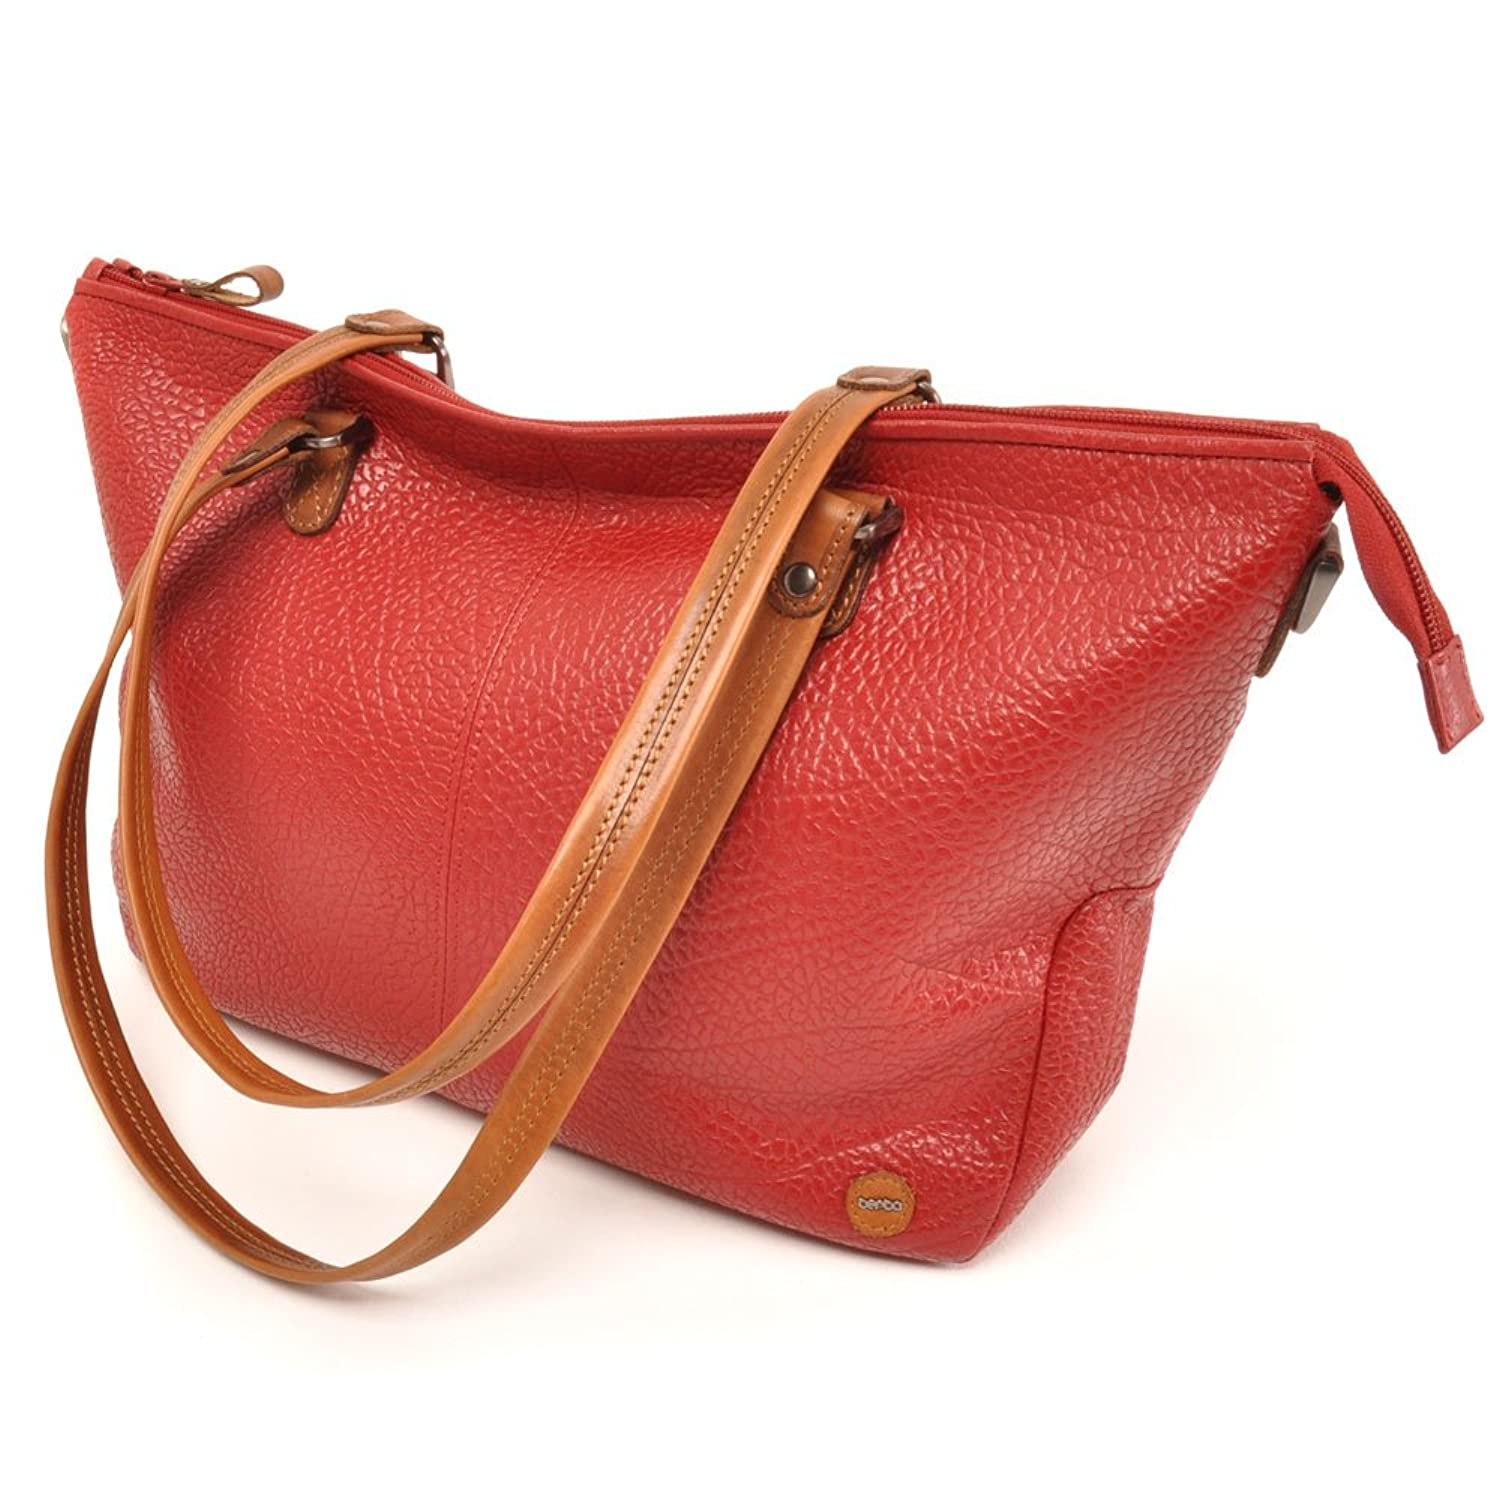 berba Chamonix 103 Shoulder bag in red